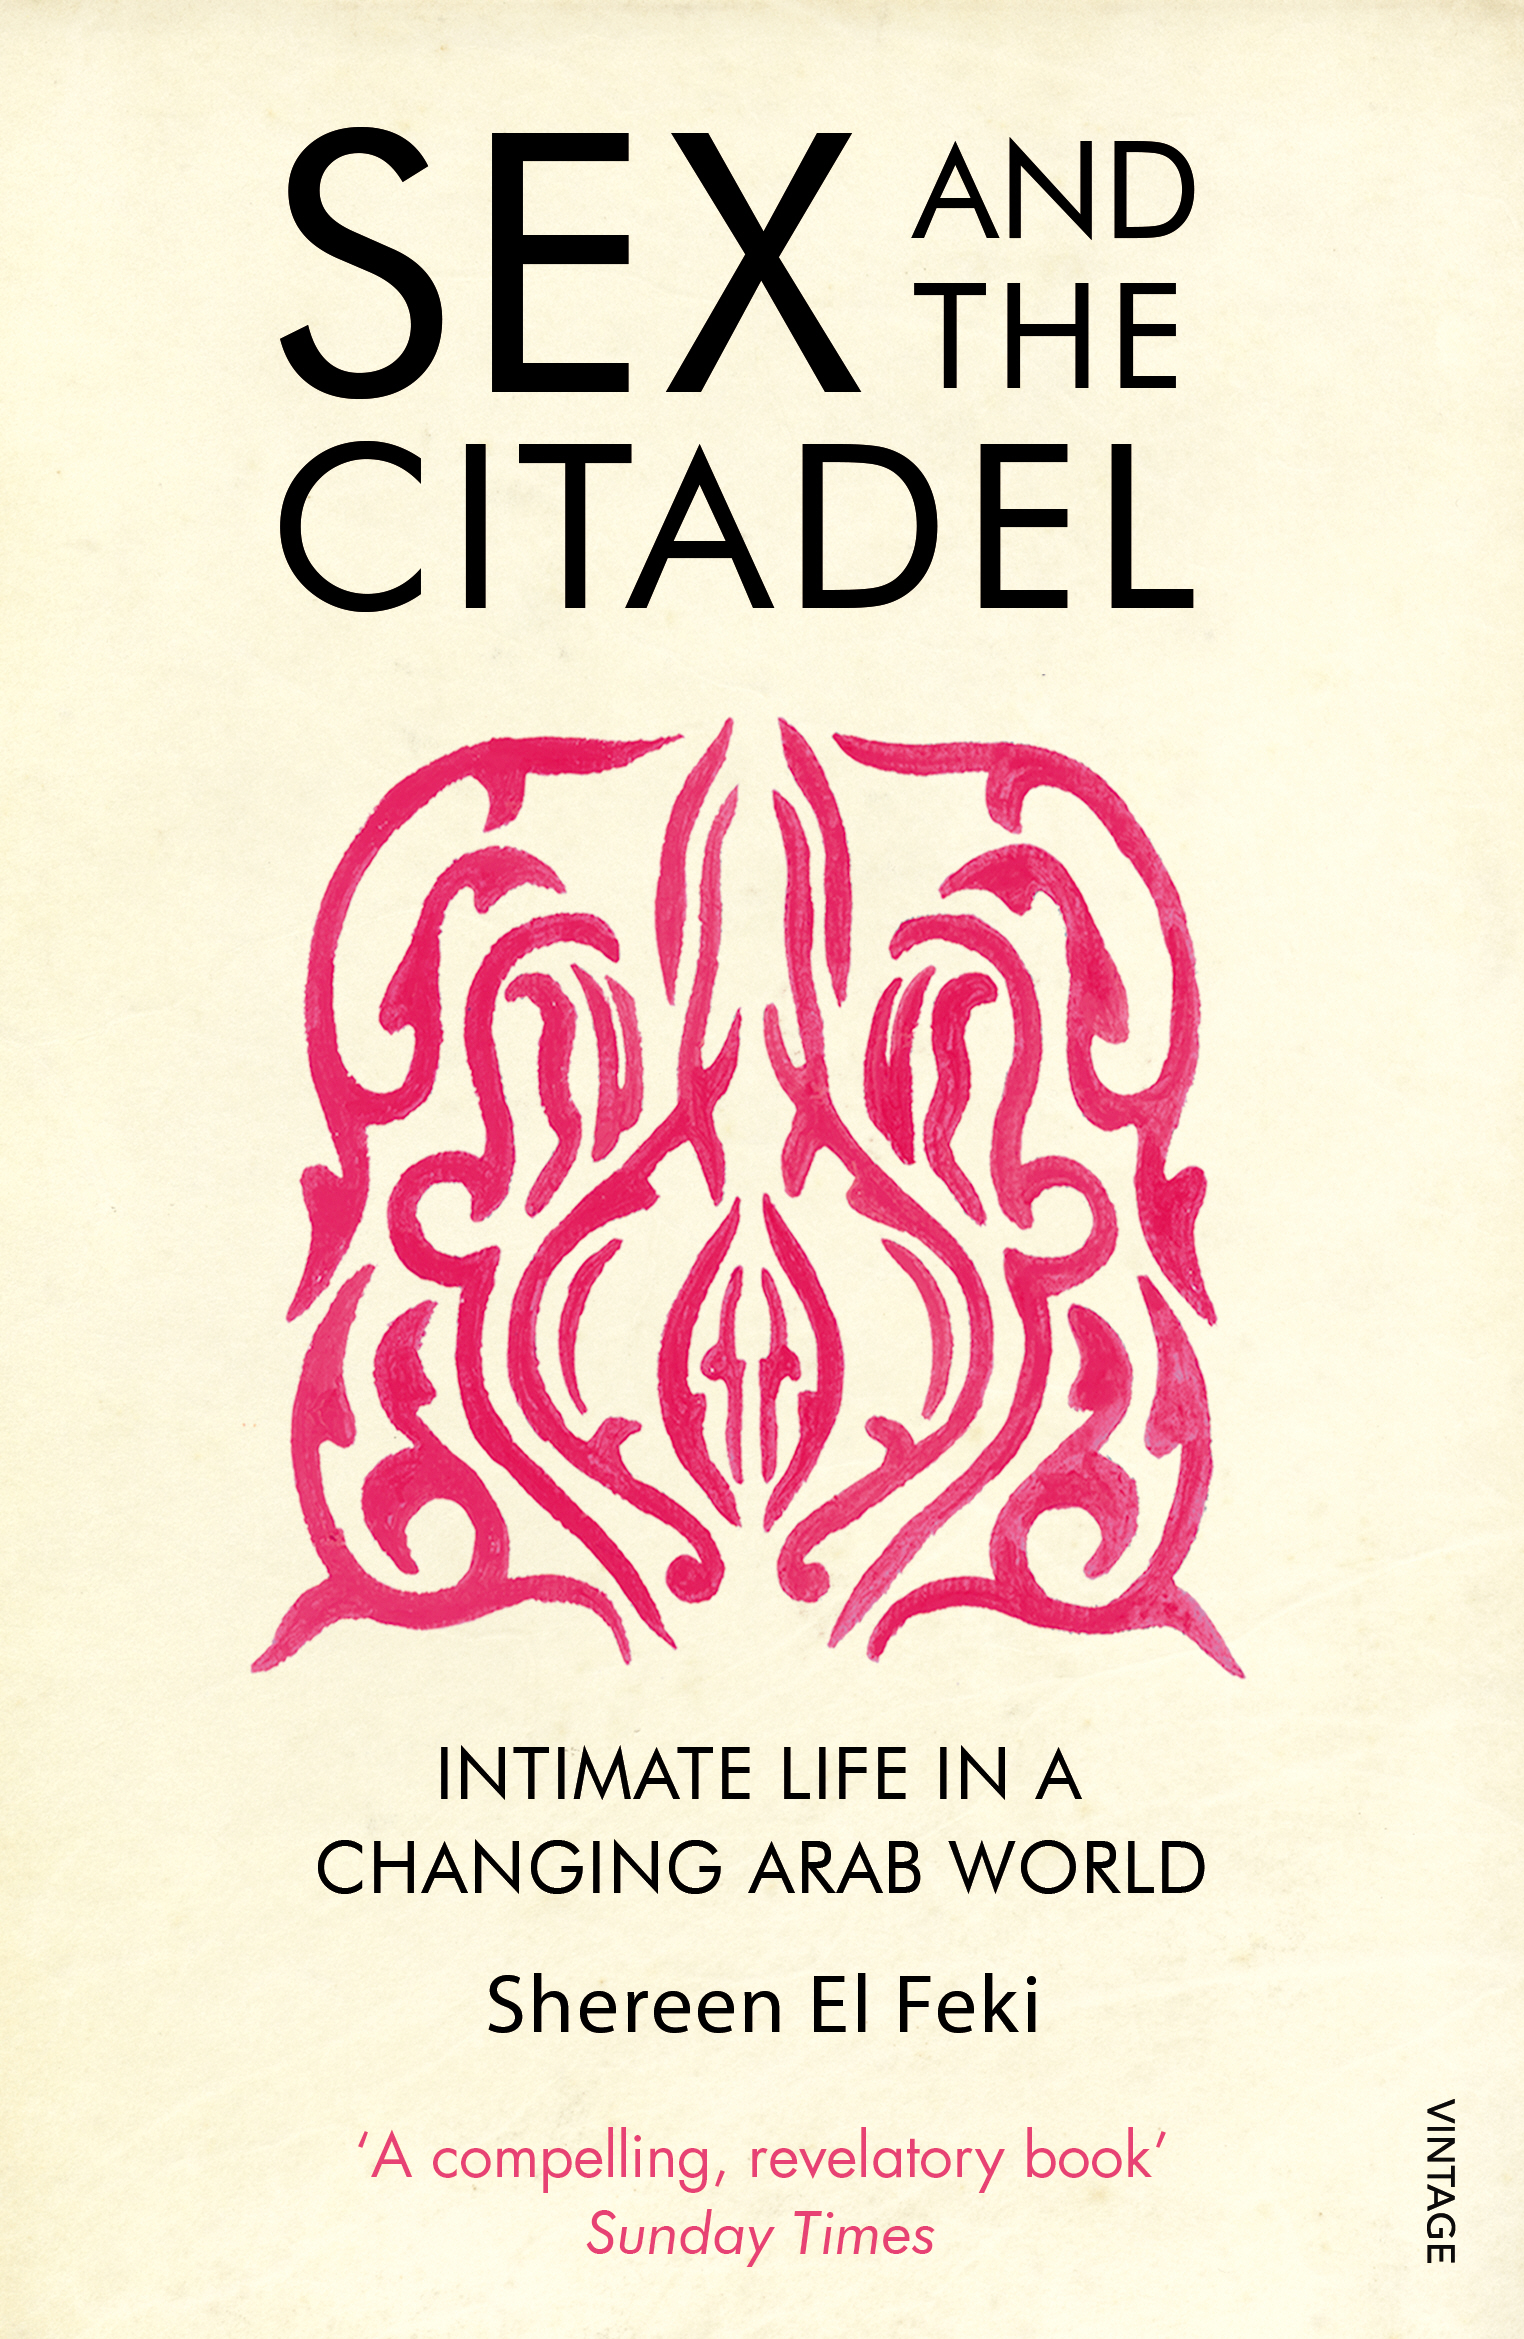 Sex and the Citadel Intimate Life in a Changing Arab World